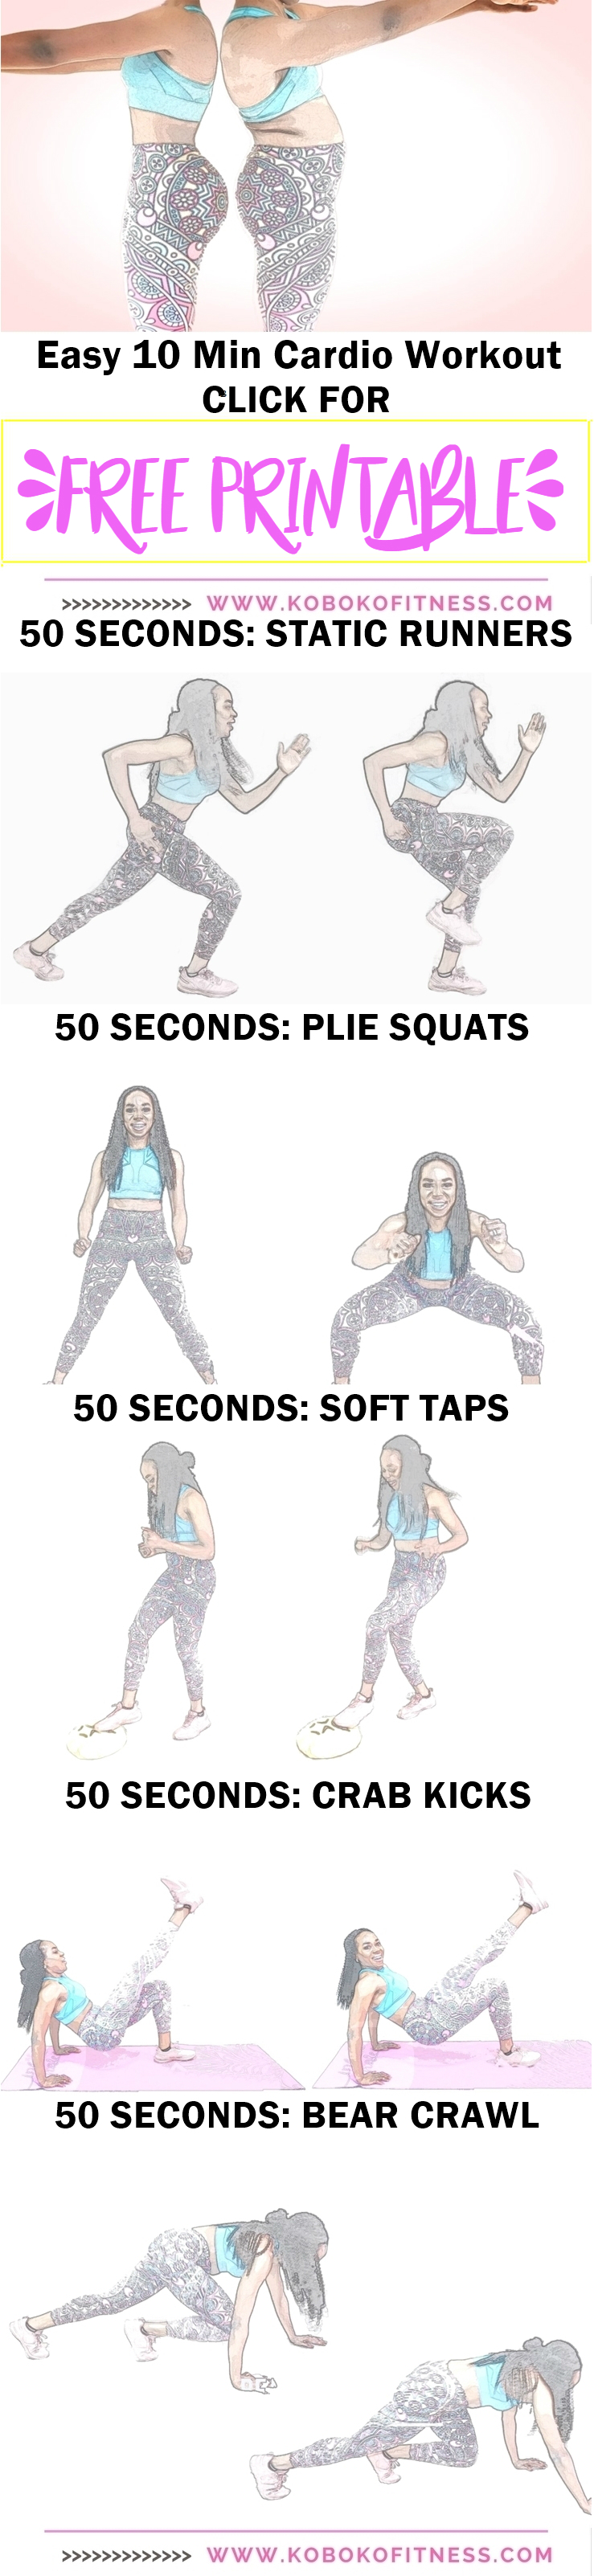 Easy 10 Min Cardio Workout To Lose Weight Free Printable